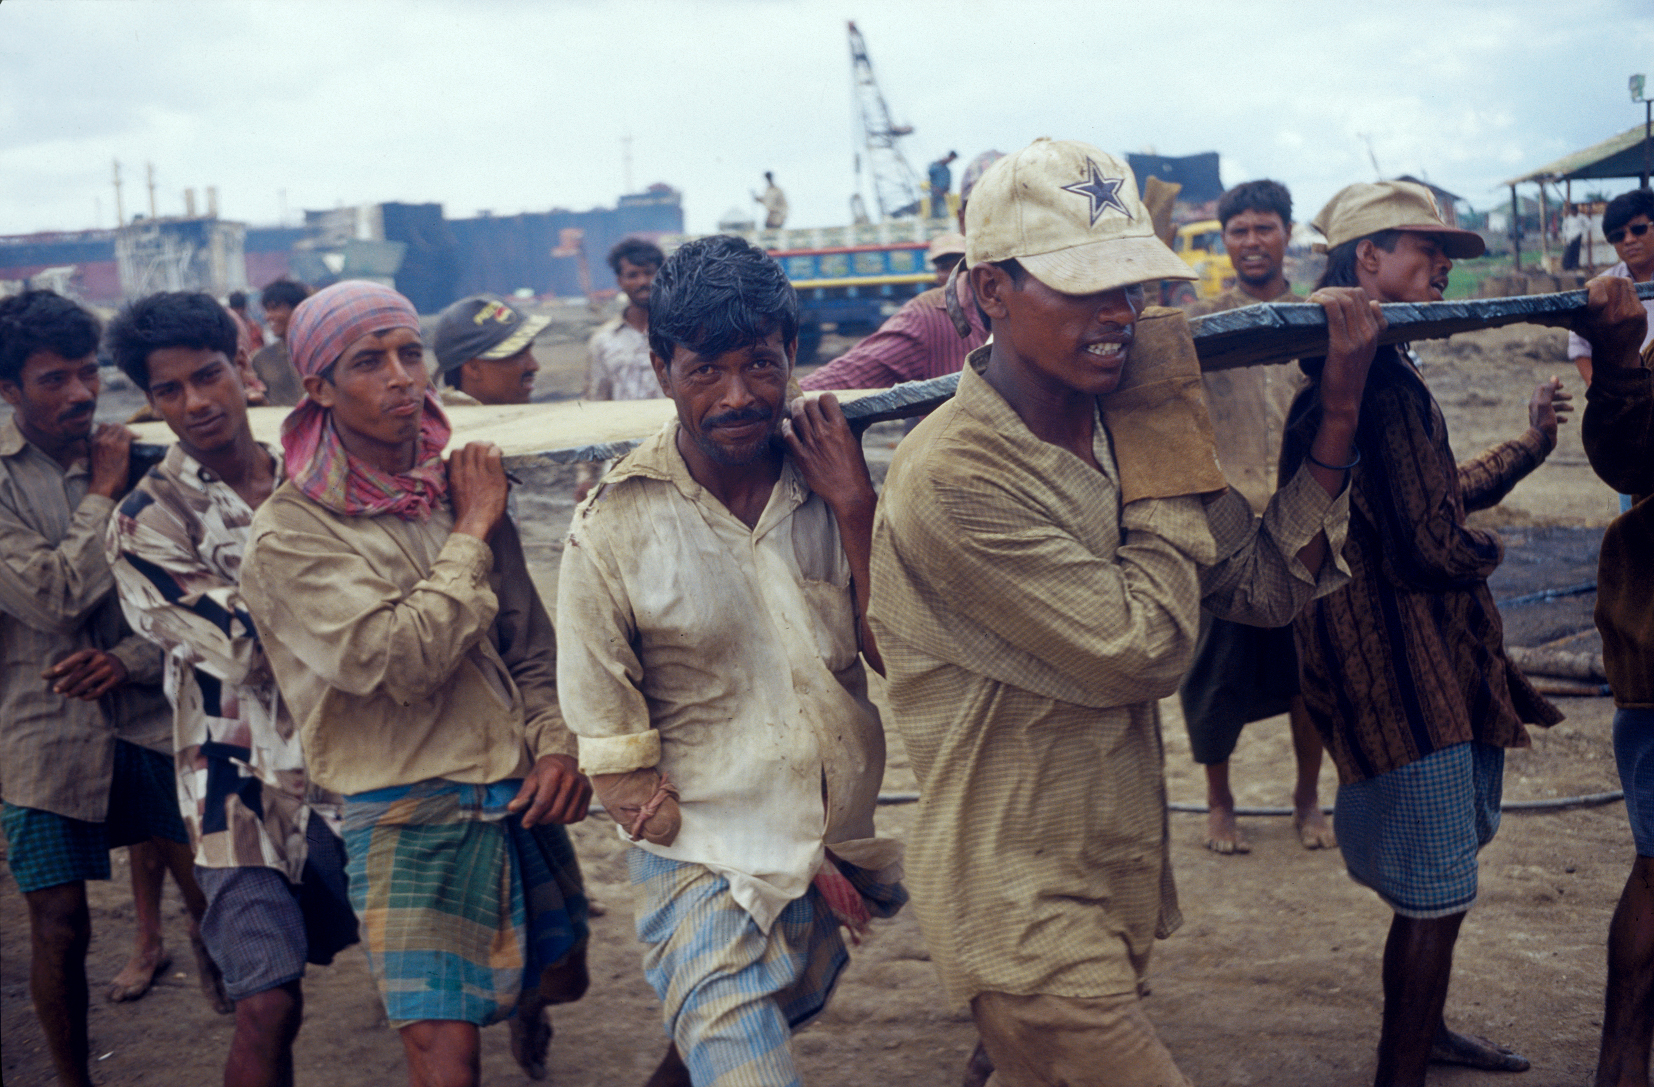 Workers on shipbreaking yards carry heavy pieces of steel scrapped from ships